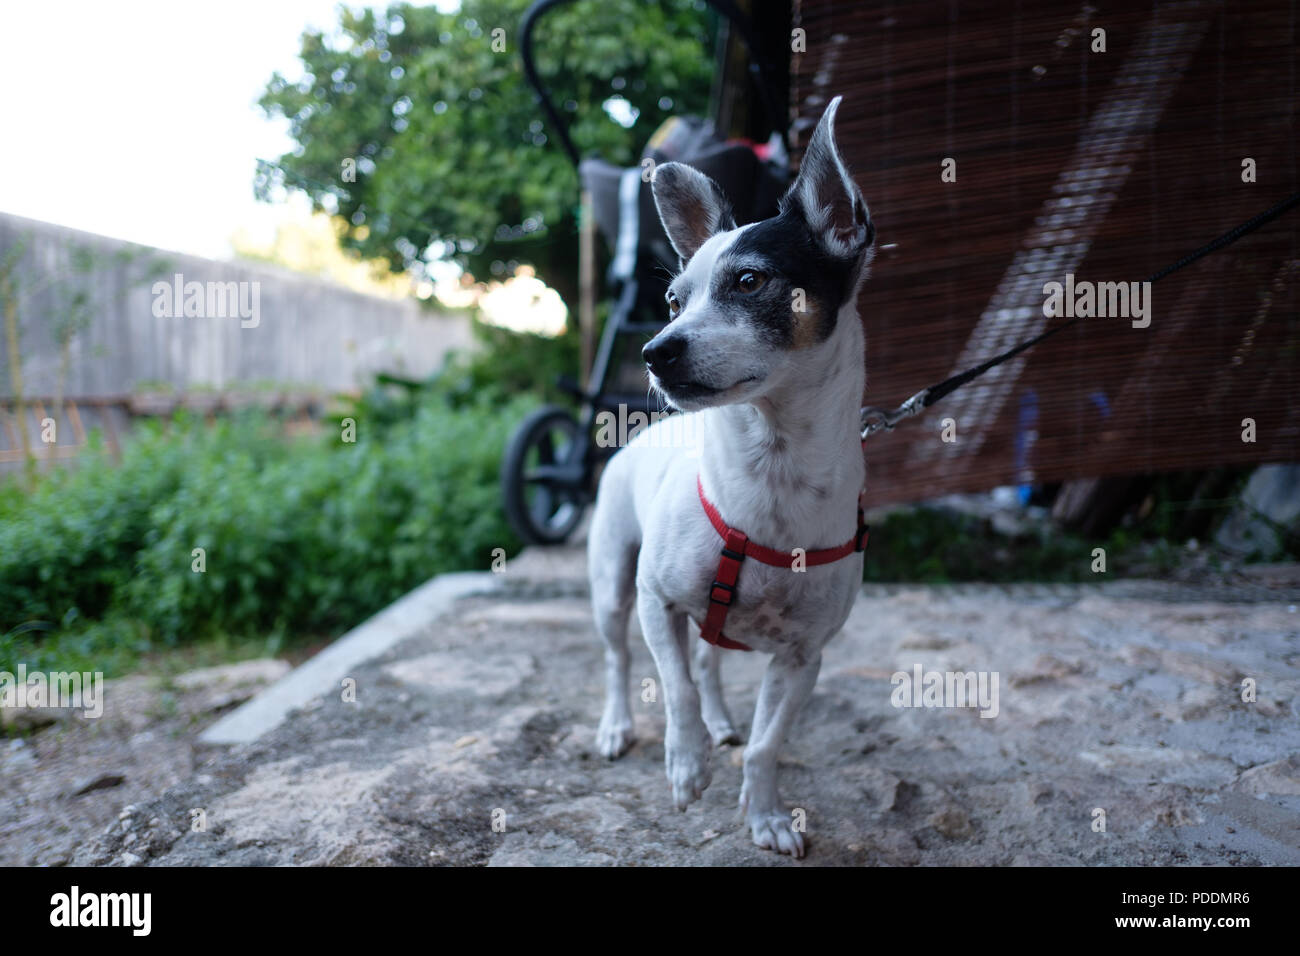 Attentive small white dog with ears perked up on a leash Stock Photo